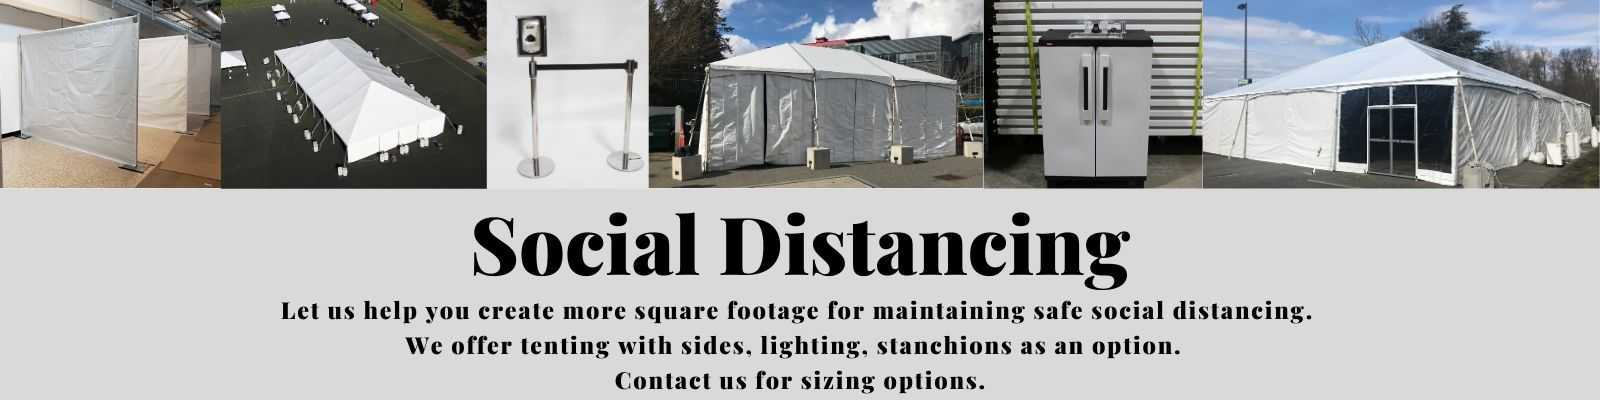 Tenting, stanchion, and lighting rentals in the Greater Puget Sound area